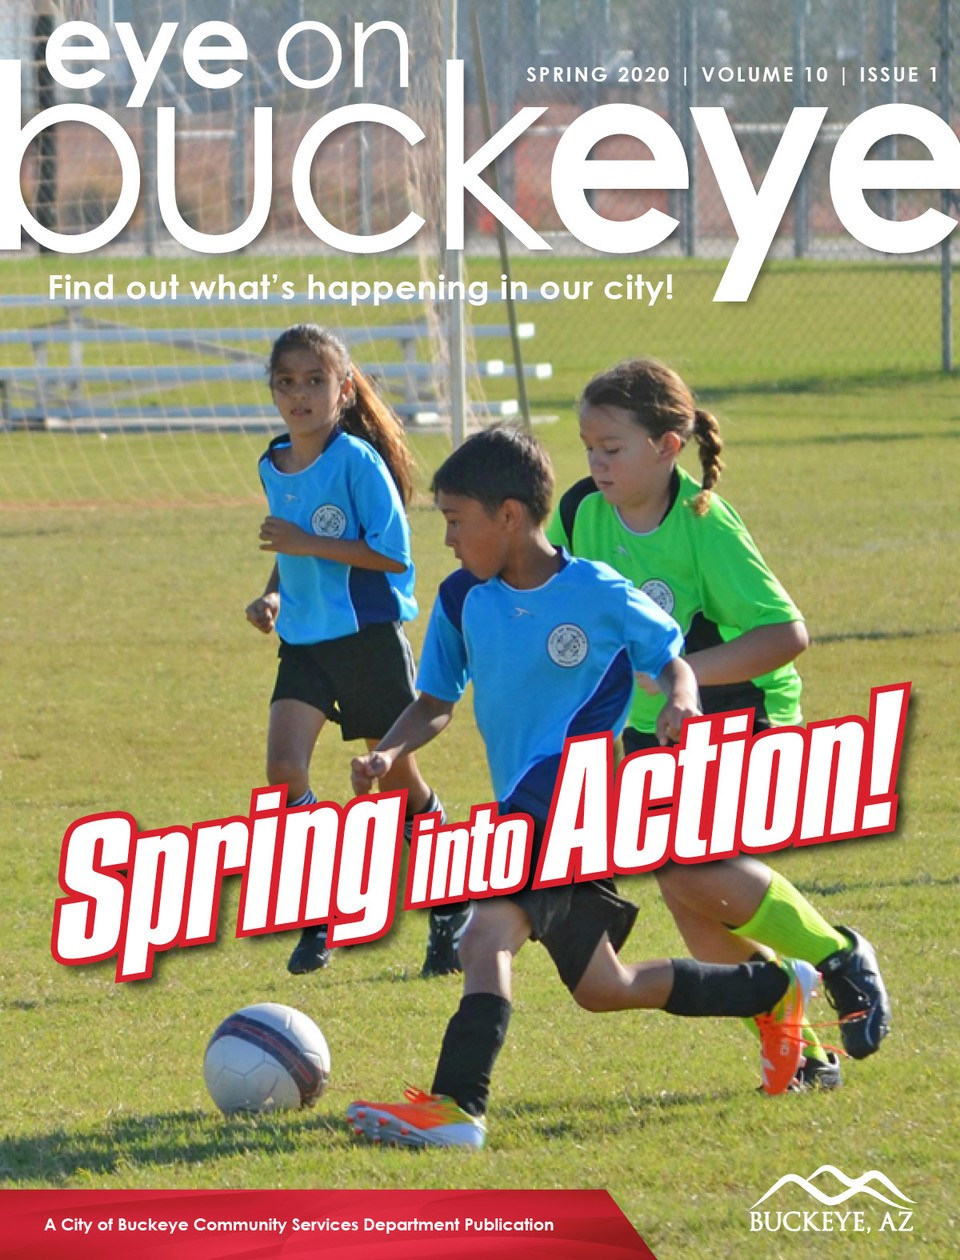 cover for spring eye on buckeye with kids playing soccer